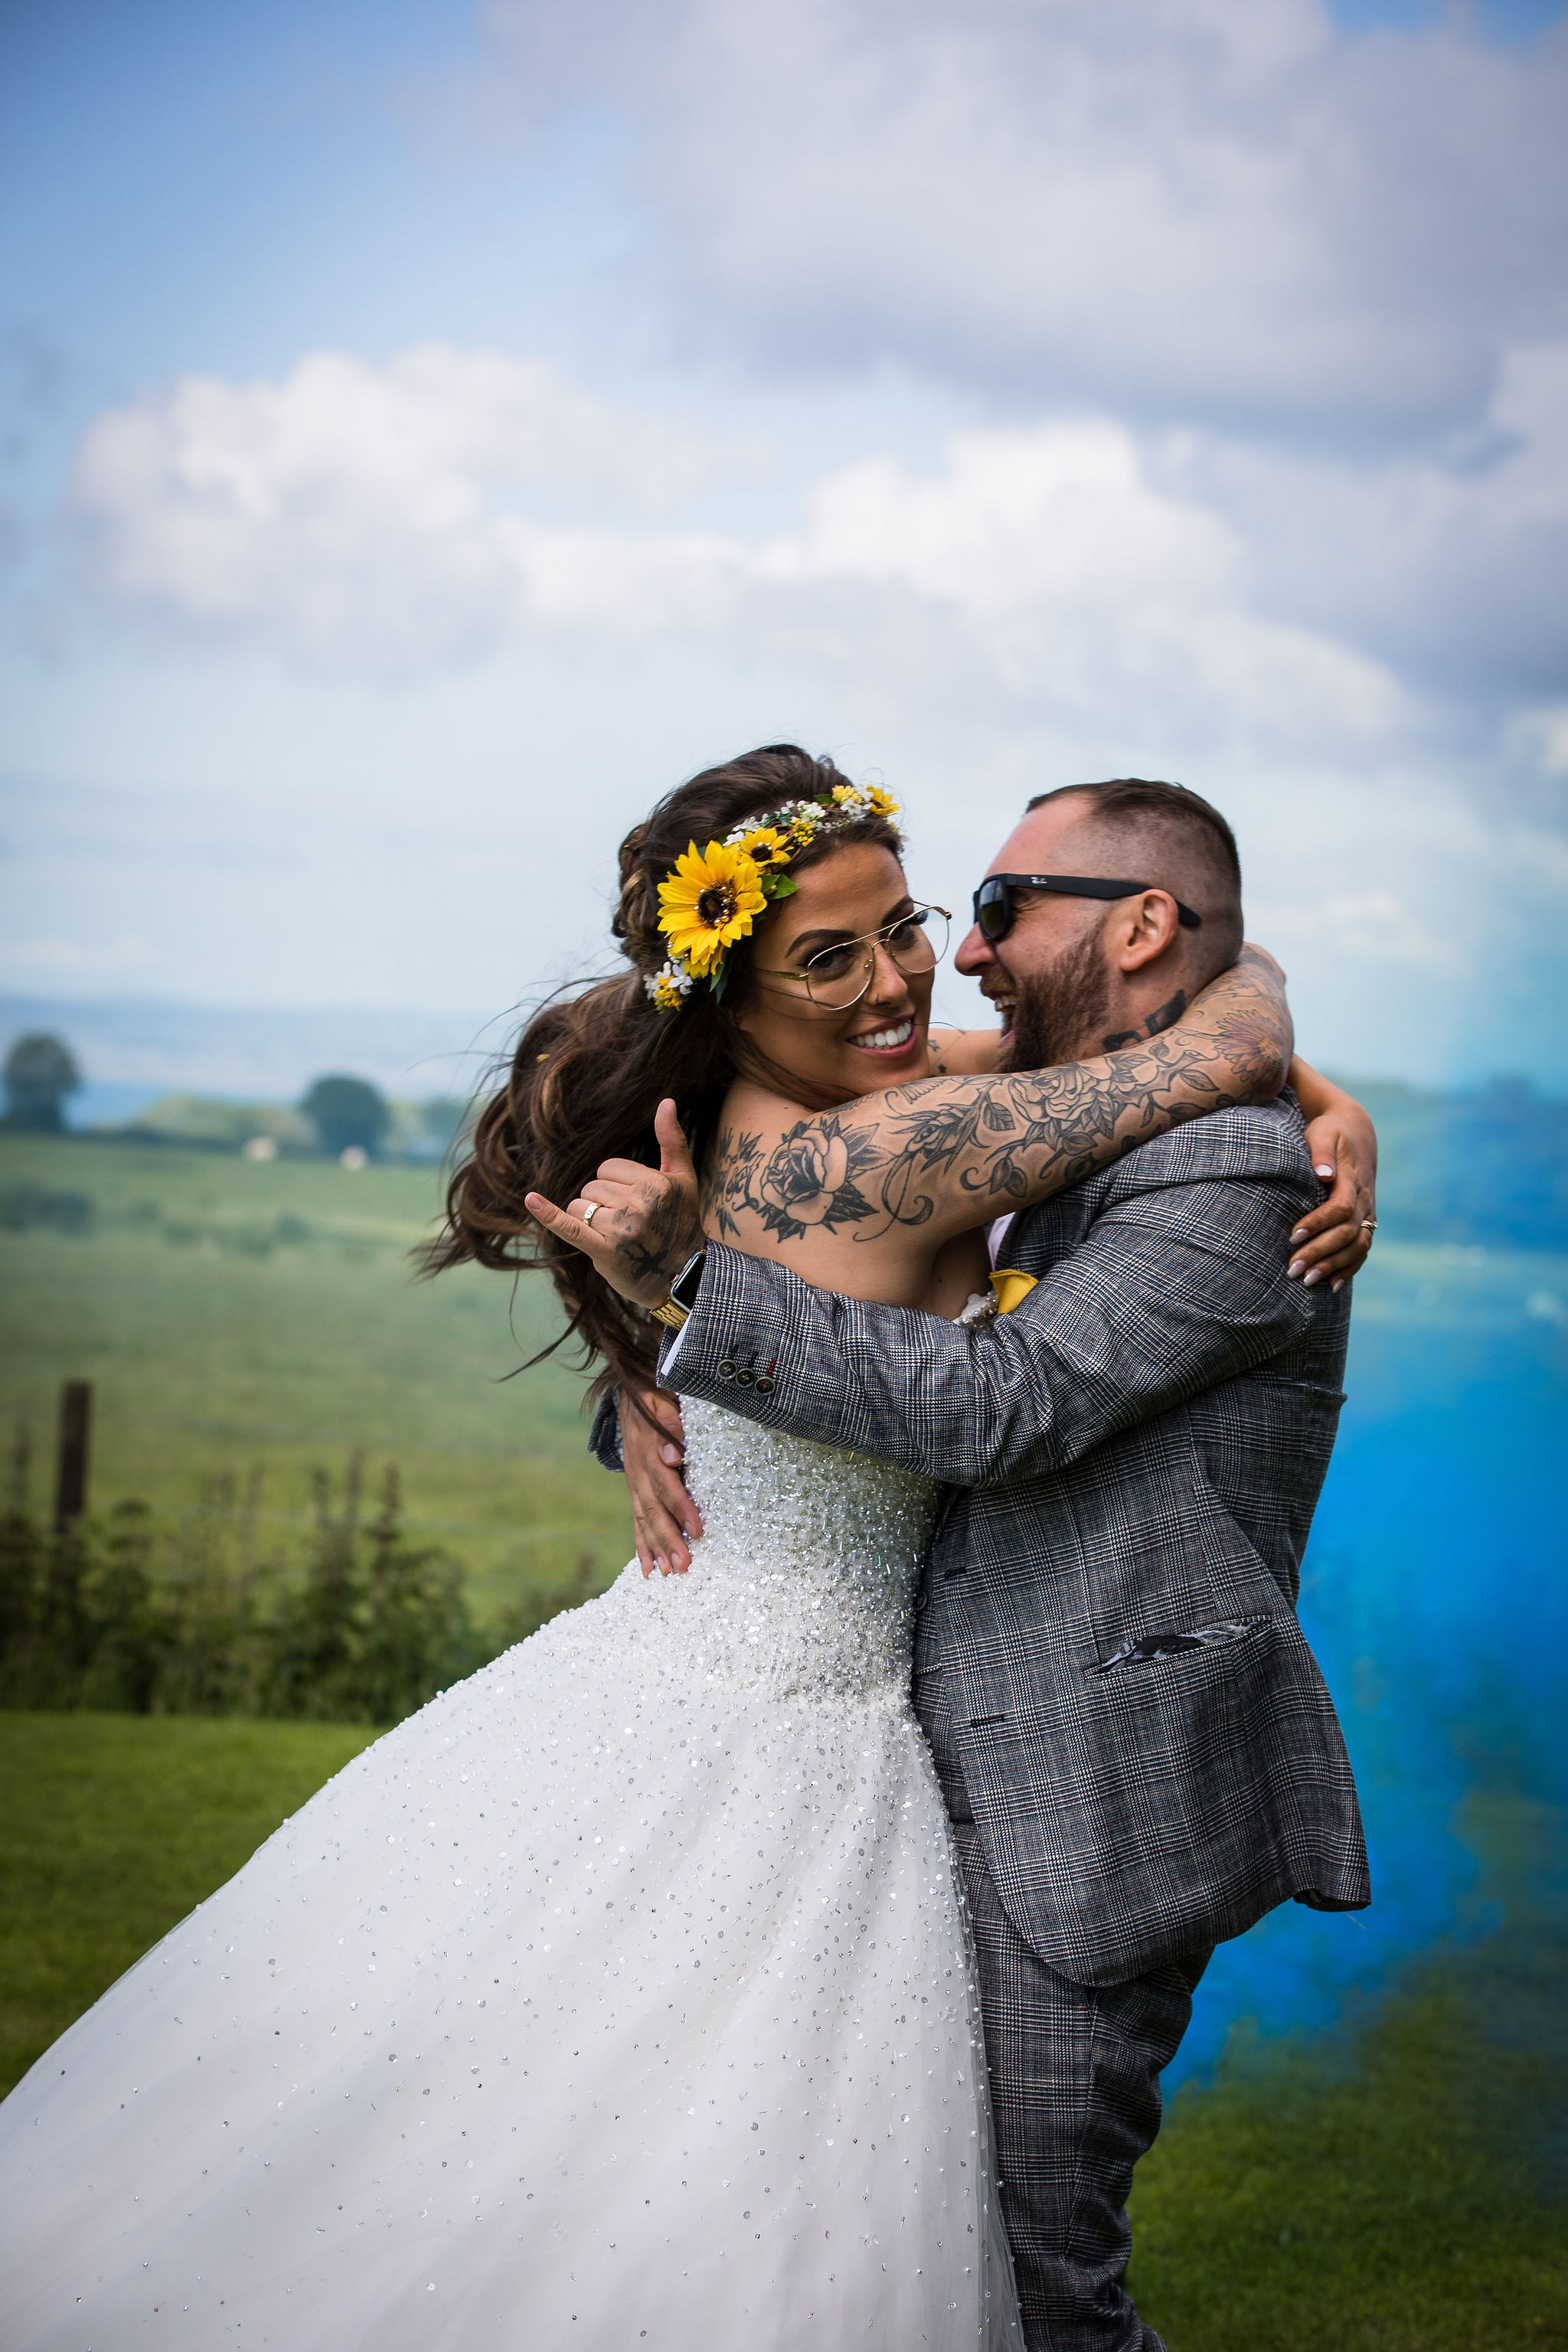 Harriet&Rhys Wedding - Magical sunflower wedding - quirky wedding with dodgems (29)